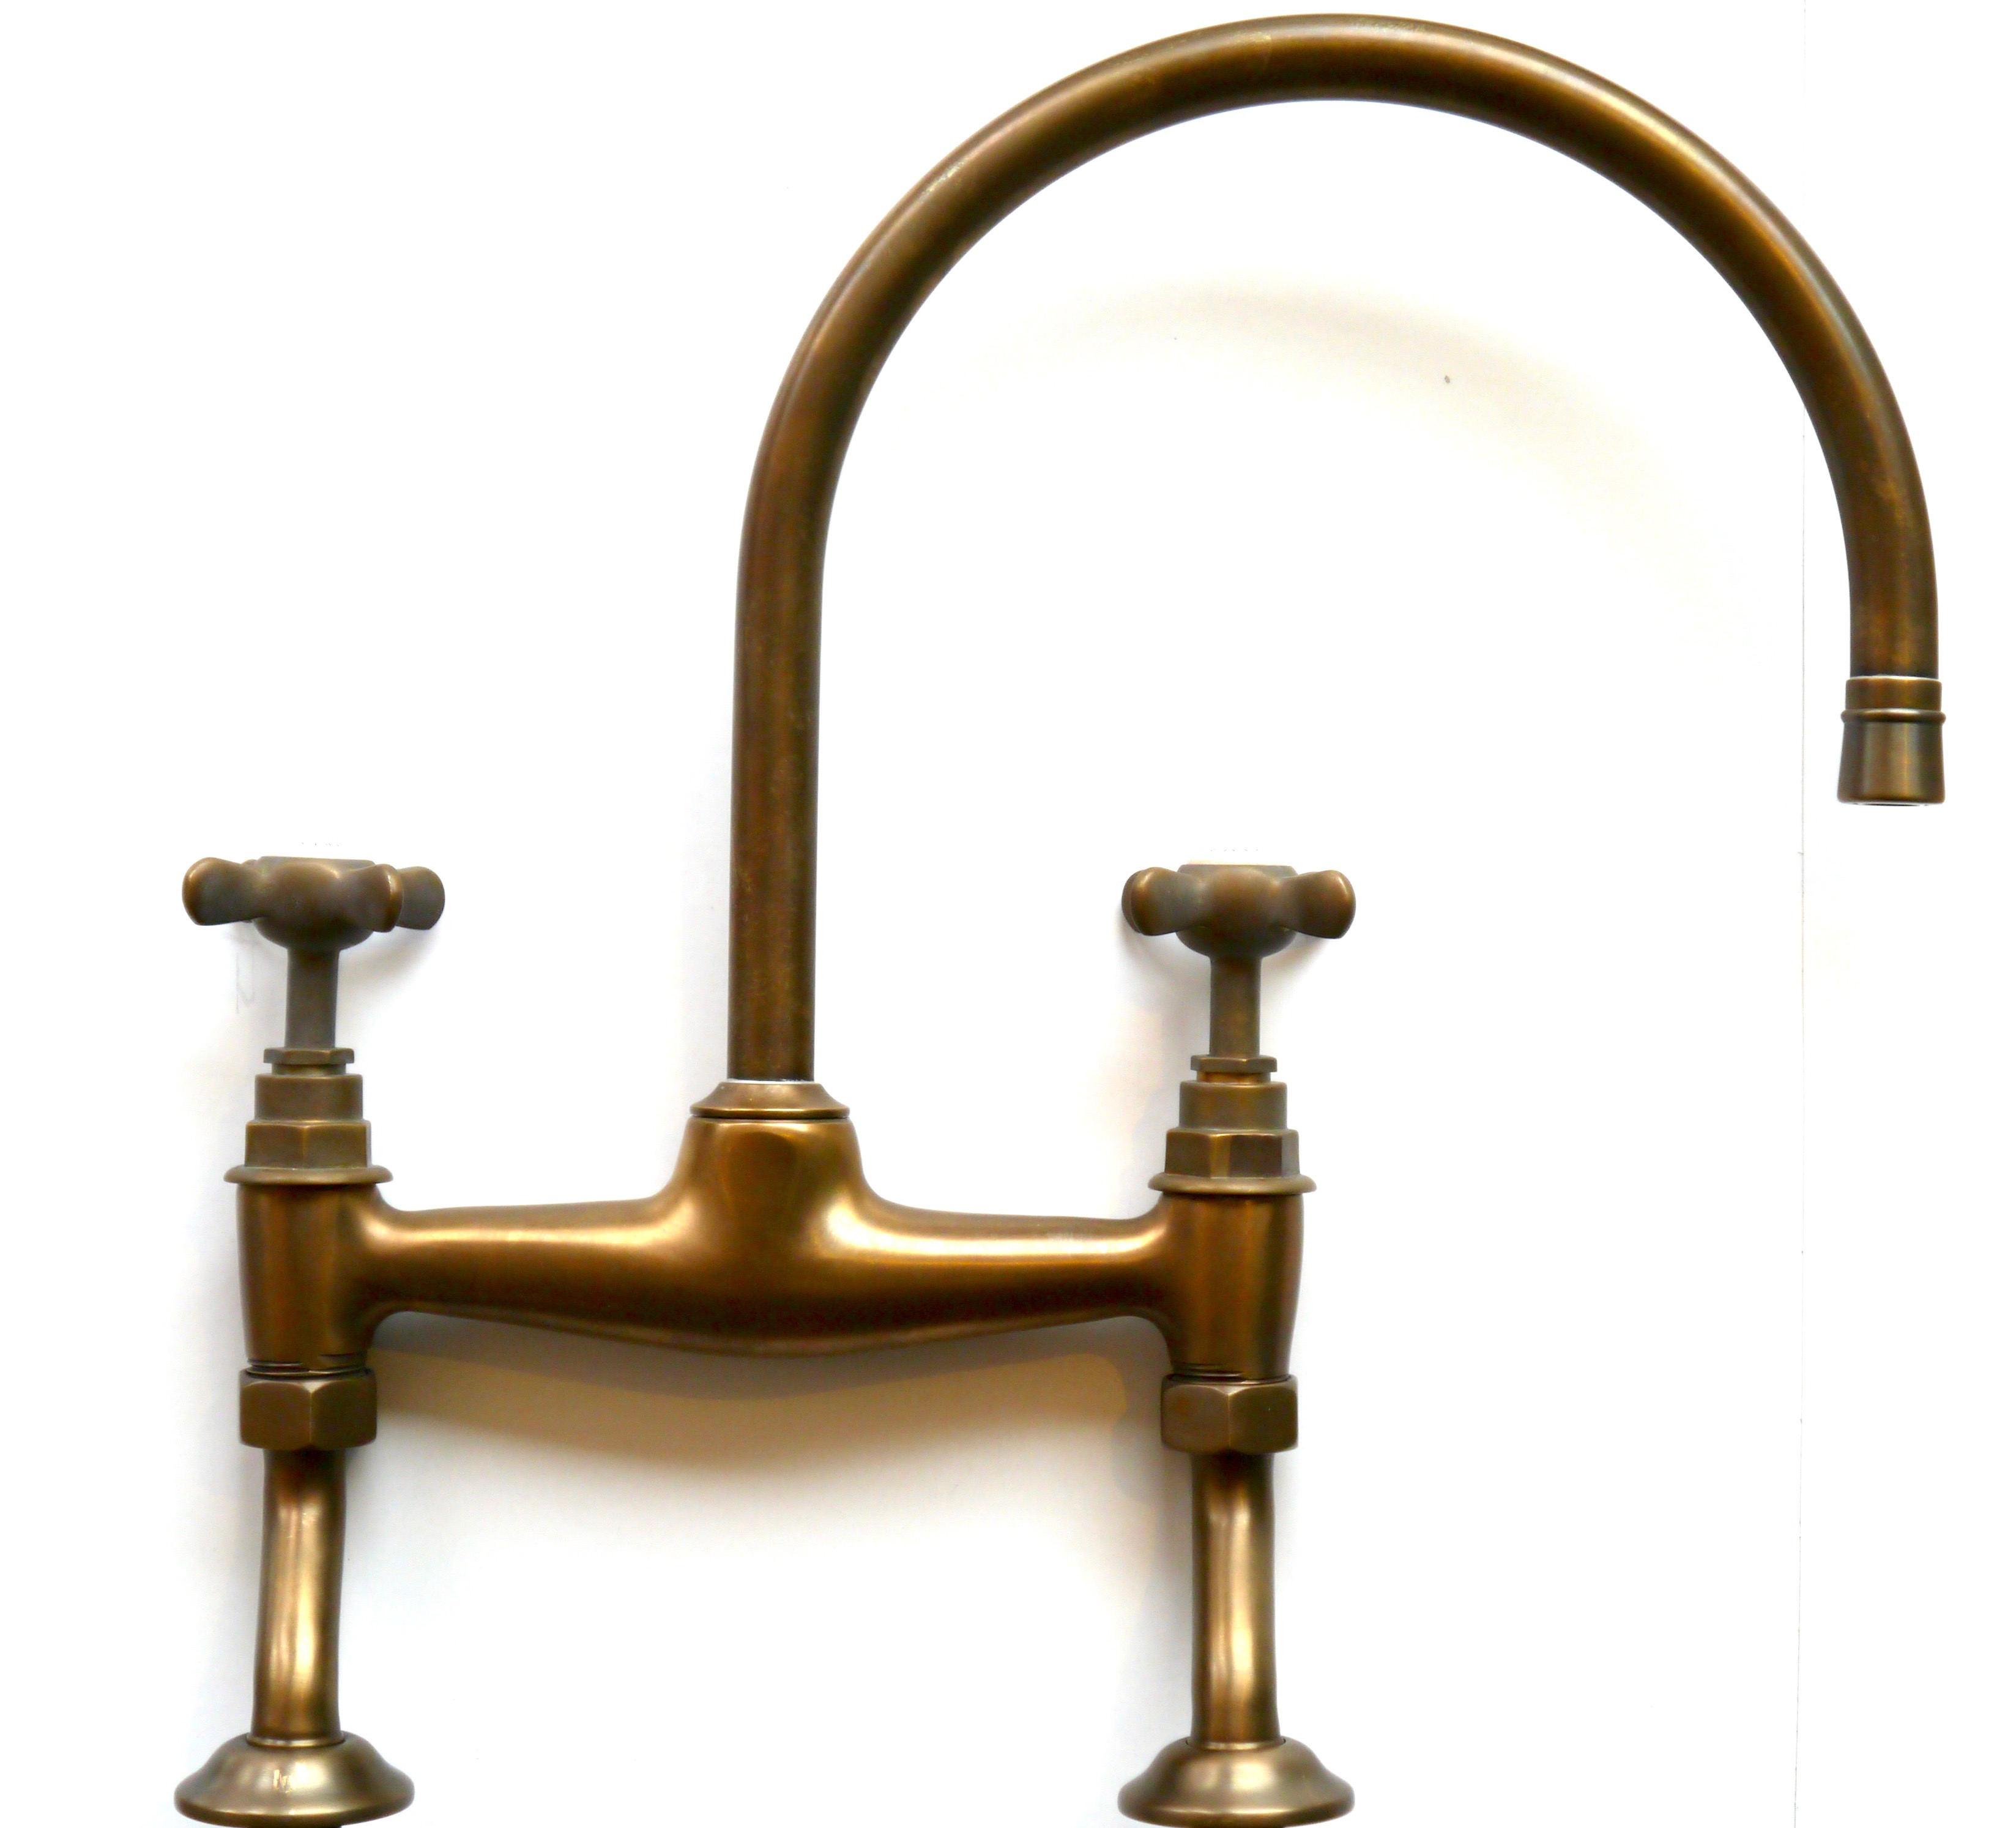 kitchen mixer tap in weathered brass finish with cross heads